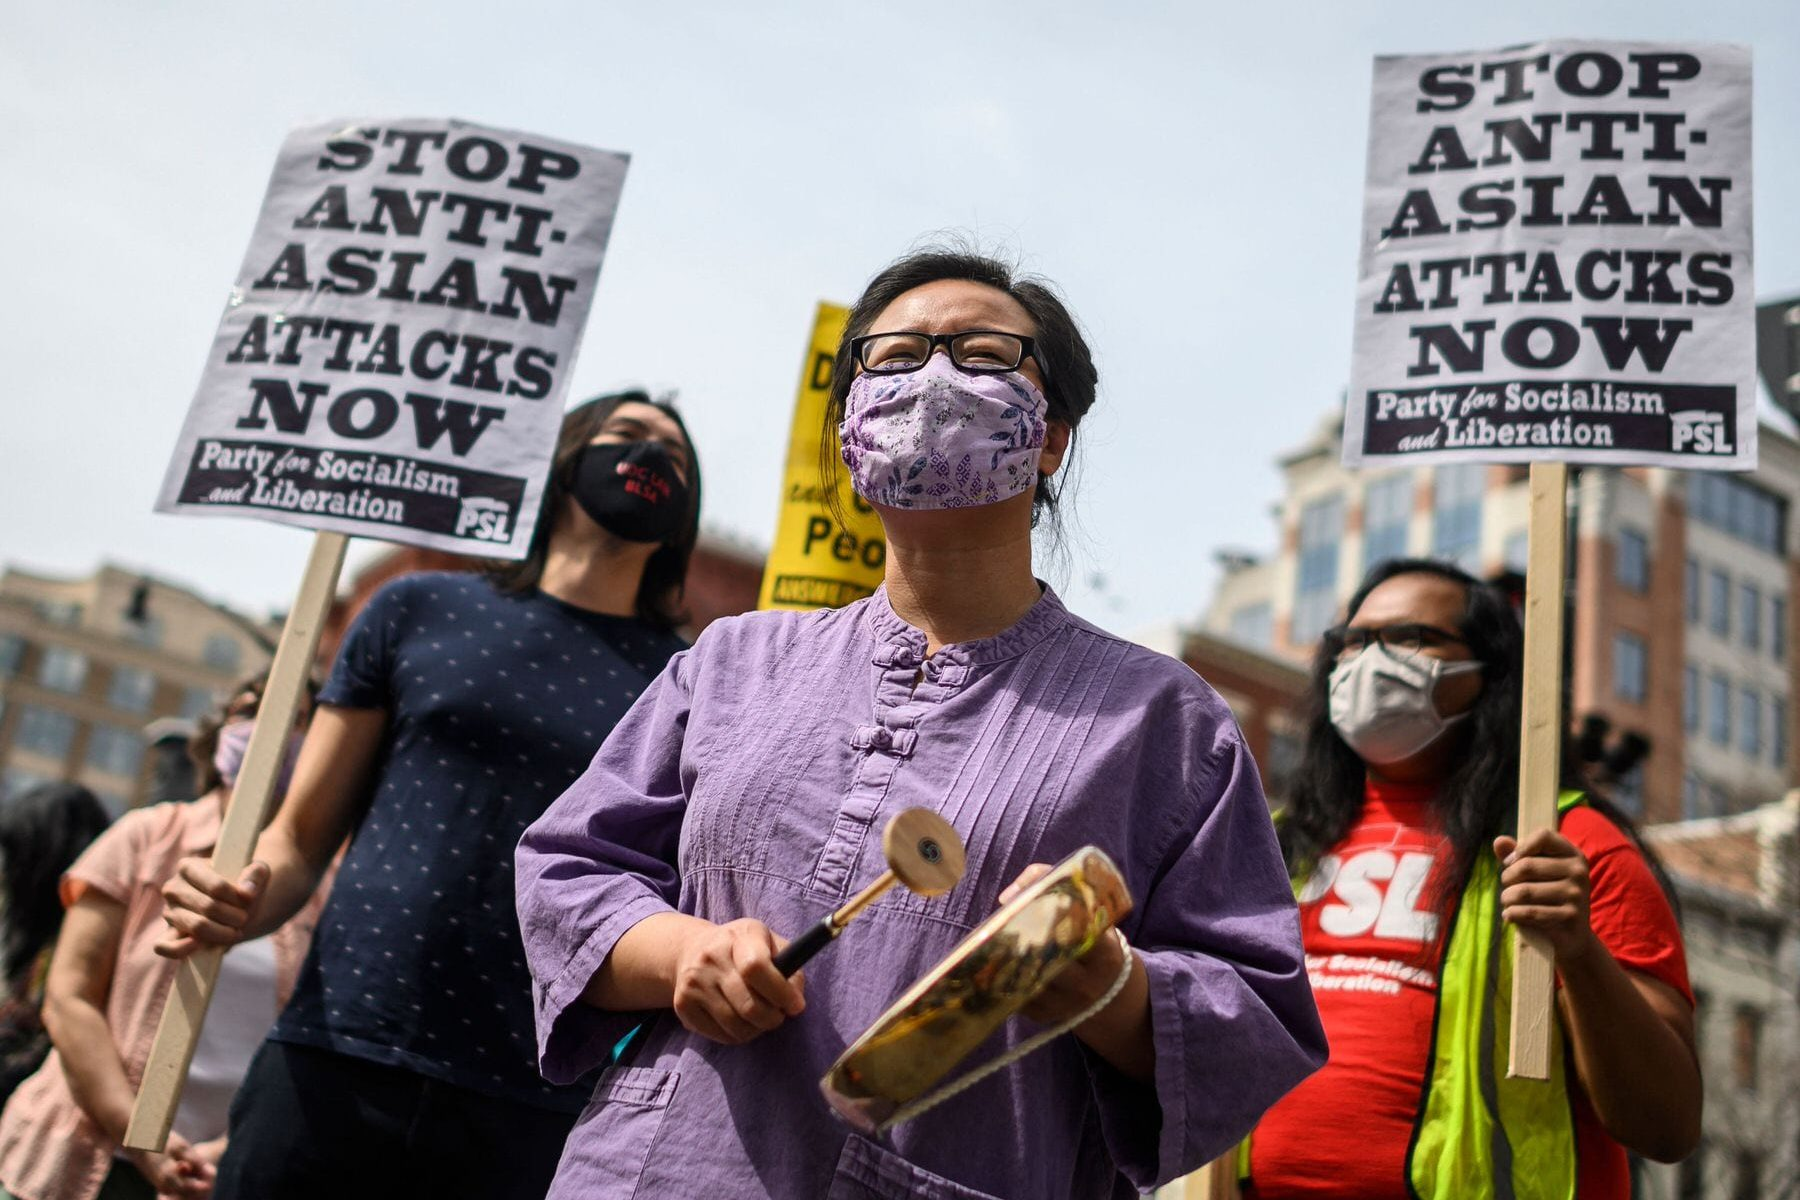 People participate in an 'Anti Asian Hate' rally in Chinatown in Washington, DC.